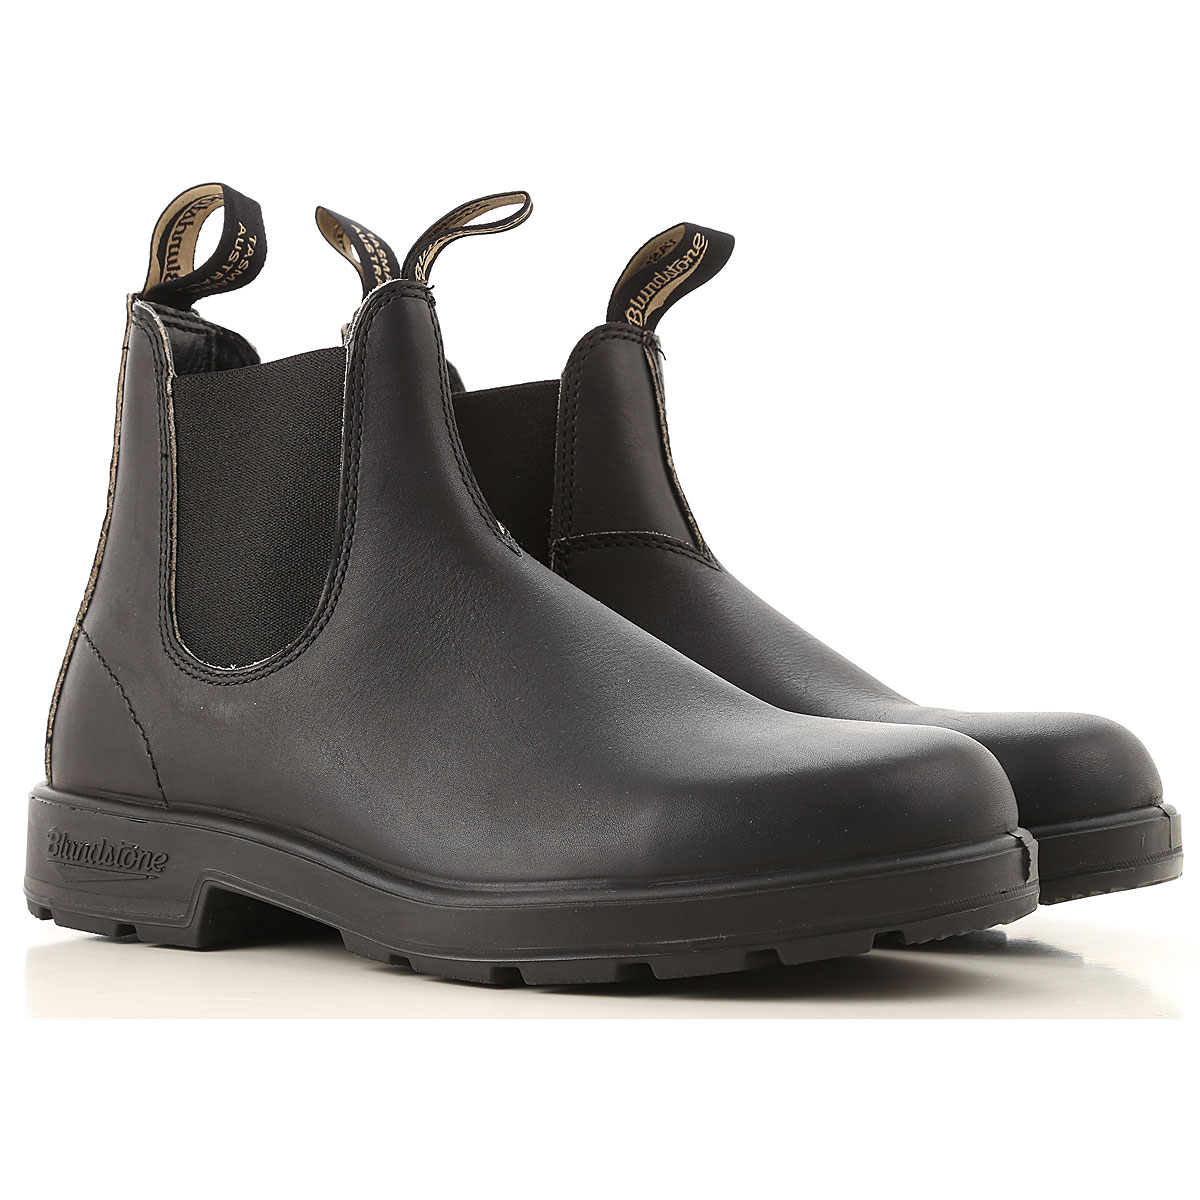 Blundstone Boots for Women, Booties On Sale, Black, Leather, 2019, AU/UK 2 - US 5 AU/UK 3 - US 6 AU/UK 4 - US 7 AU/UK 6 - US 9 AU/UK 7 - US 10